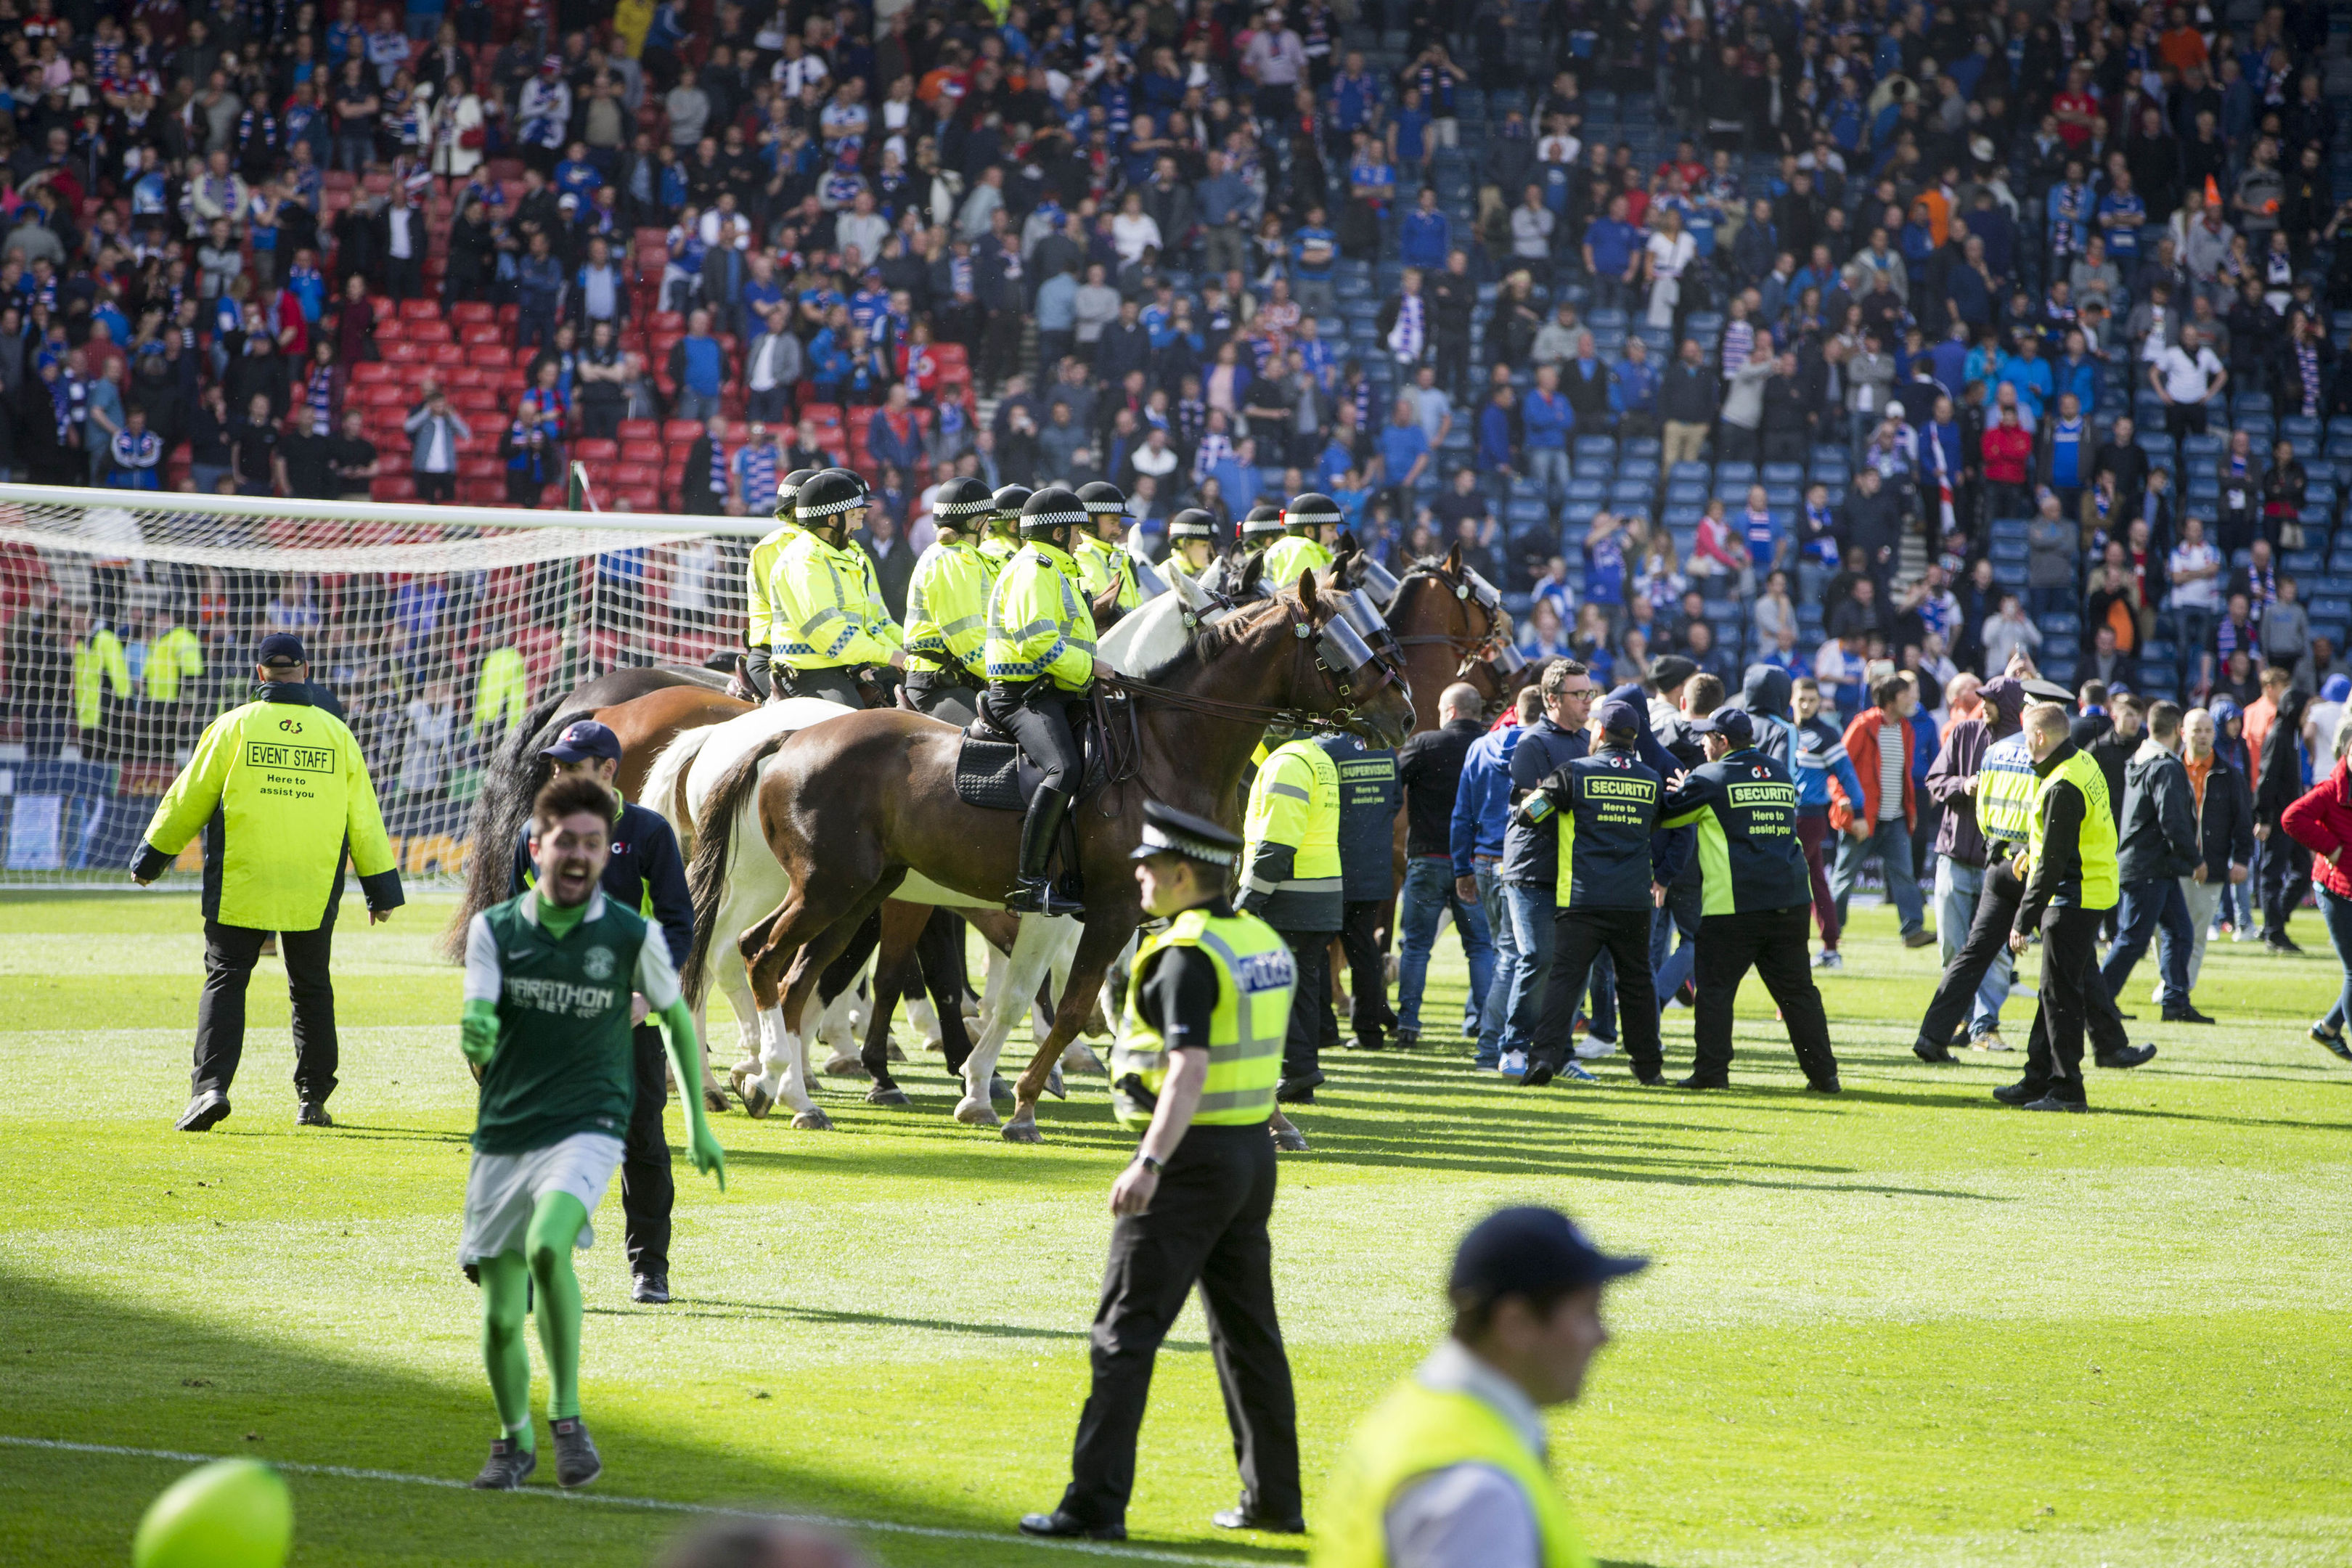 Police horses trying to guide fans off the pitch.